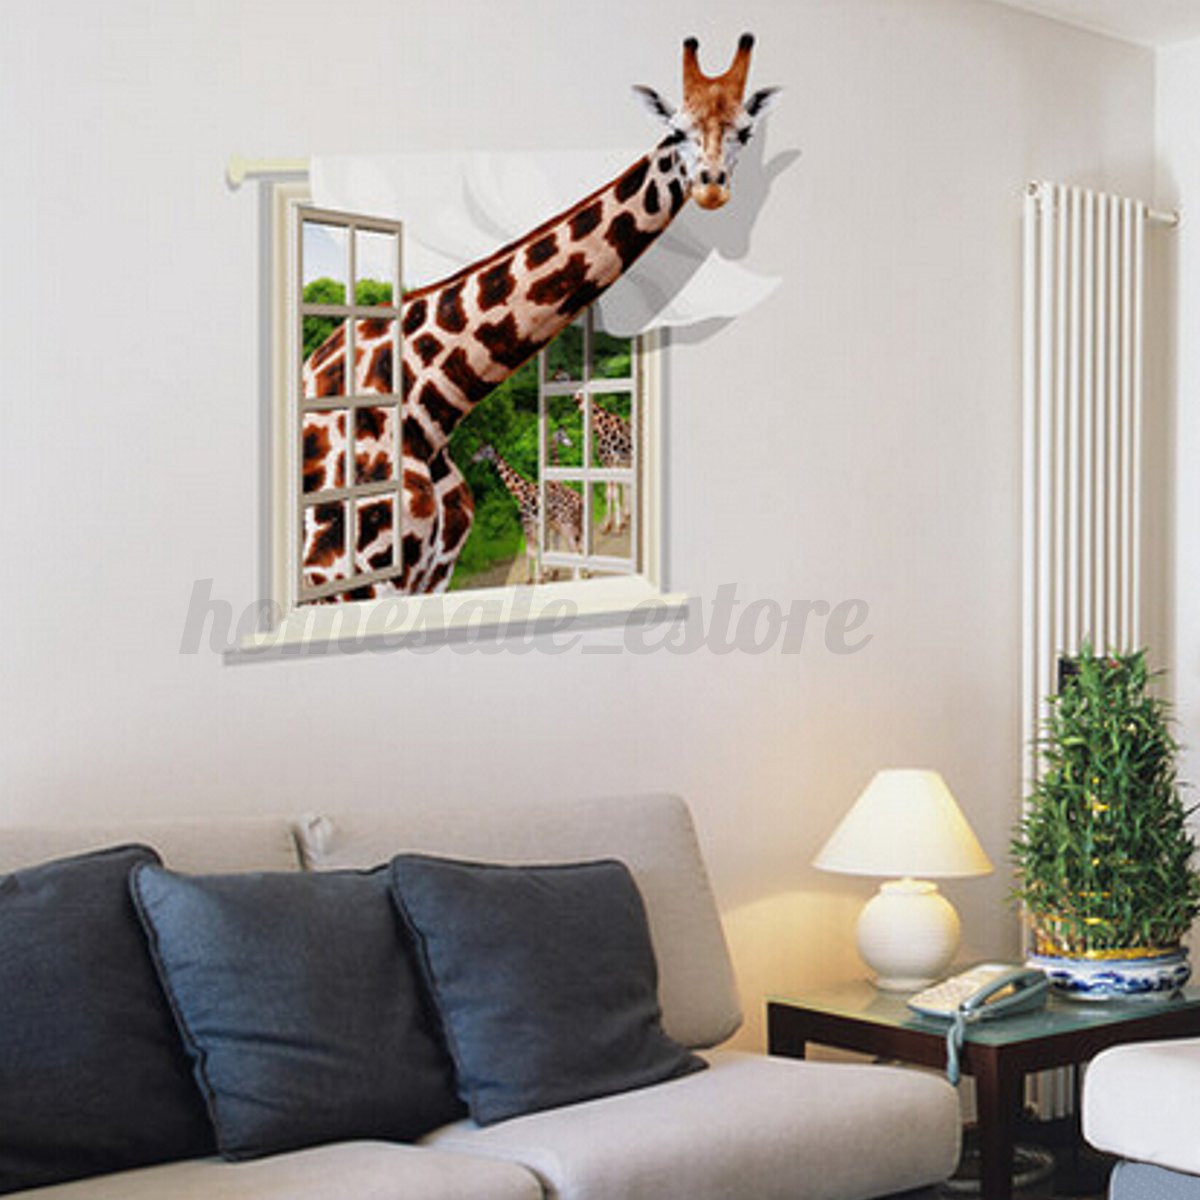 3d dinosaur animal window removable wall sticker mural art decal room decor. Black Bedroom Furniture Sets. Home Design Ideas